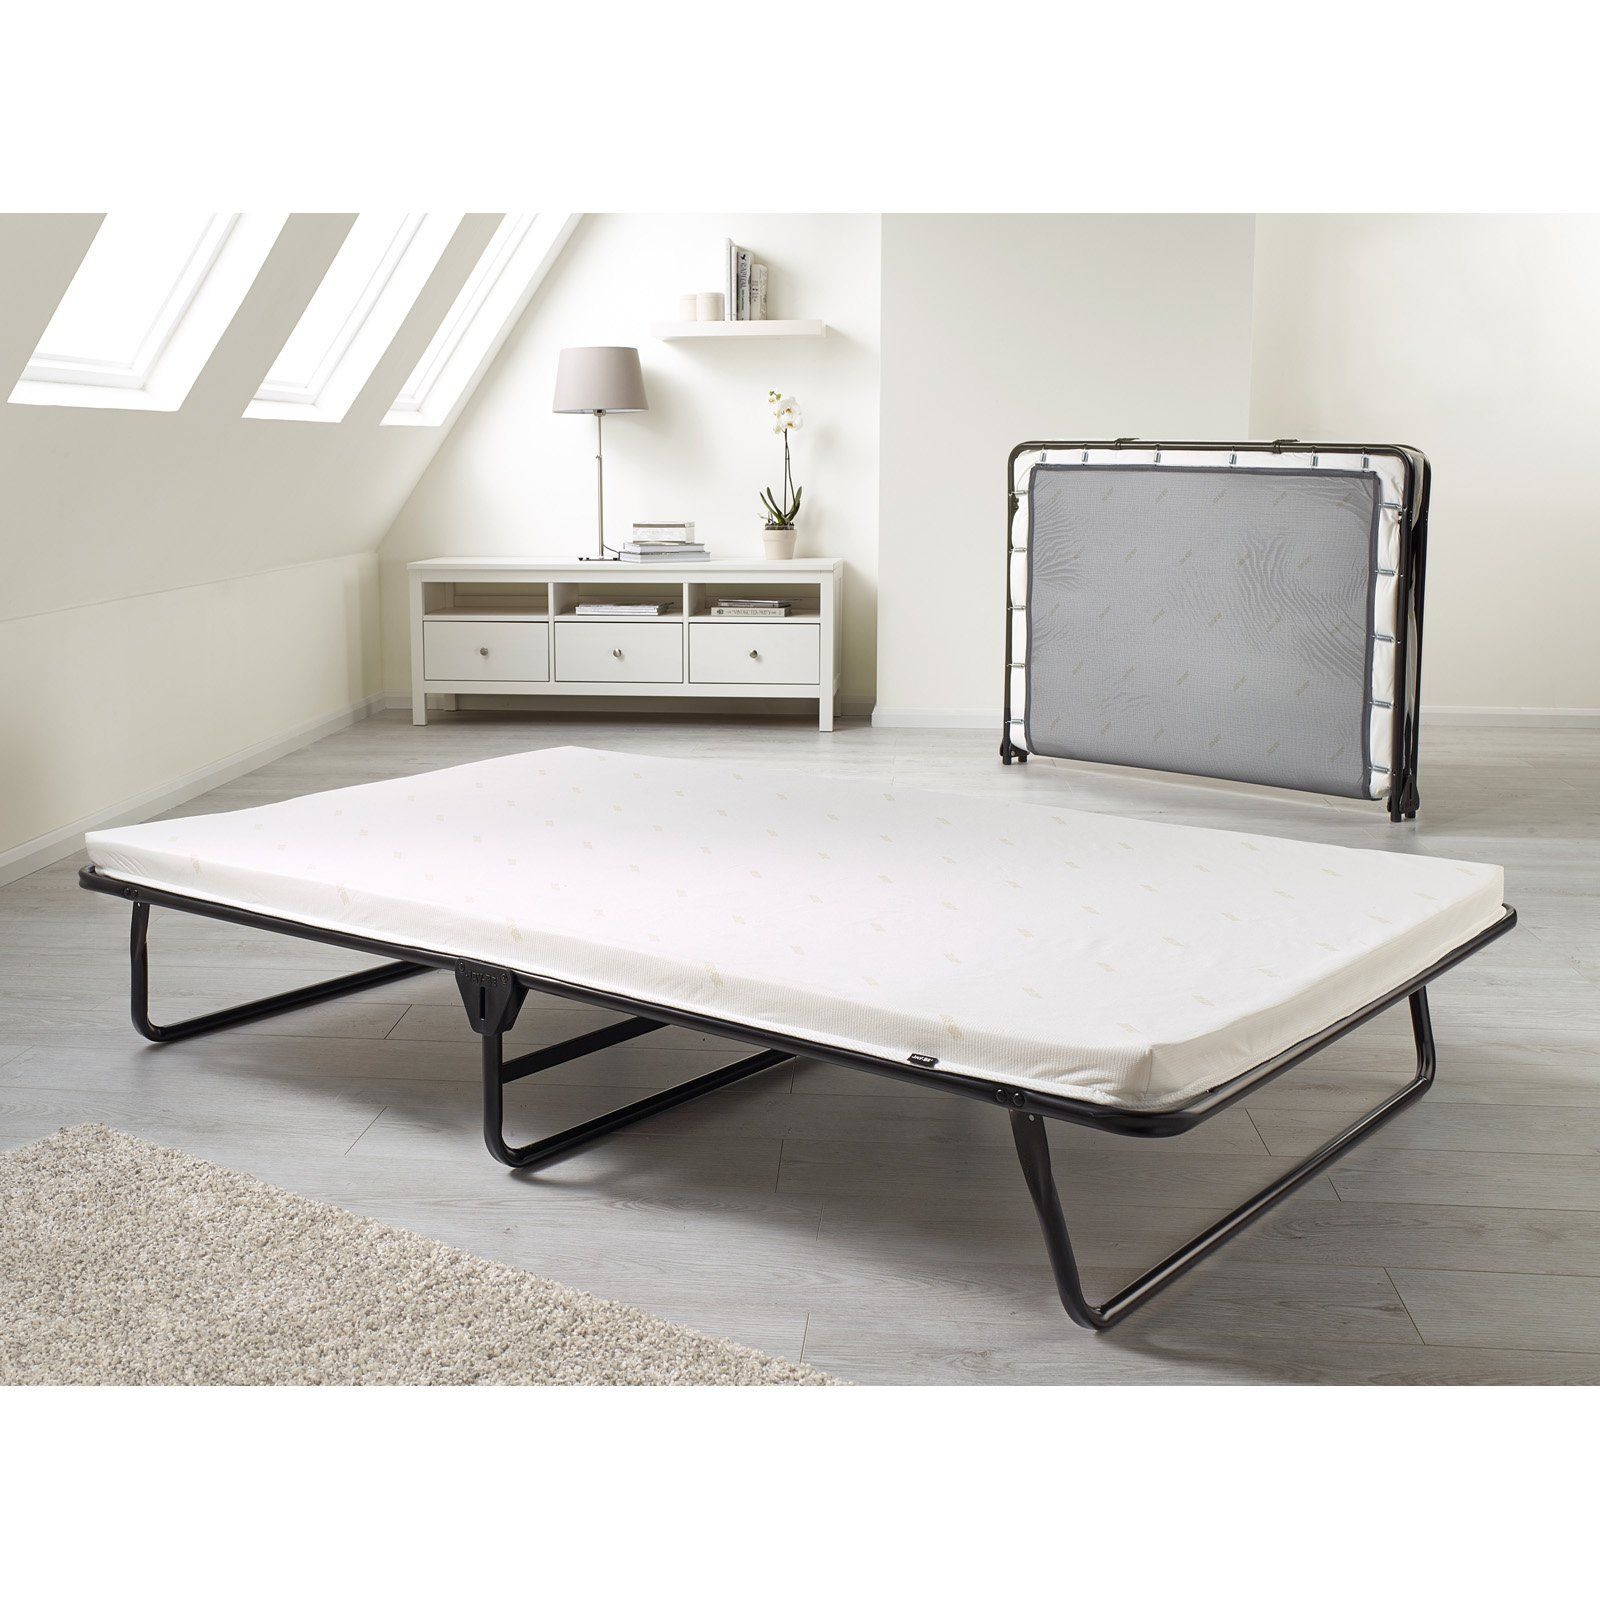 Home In 2020 Folding Beds Folding Guest Bed Furniture